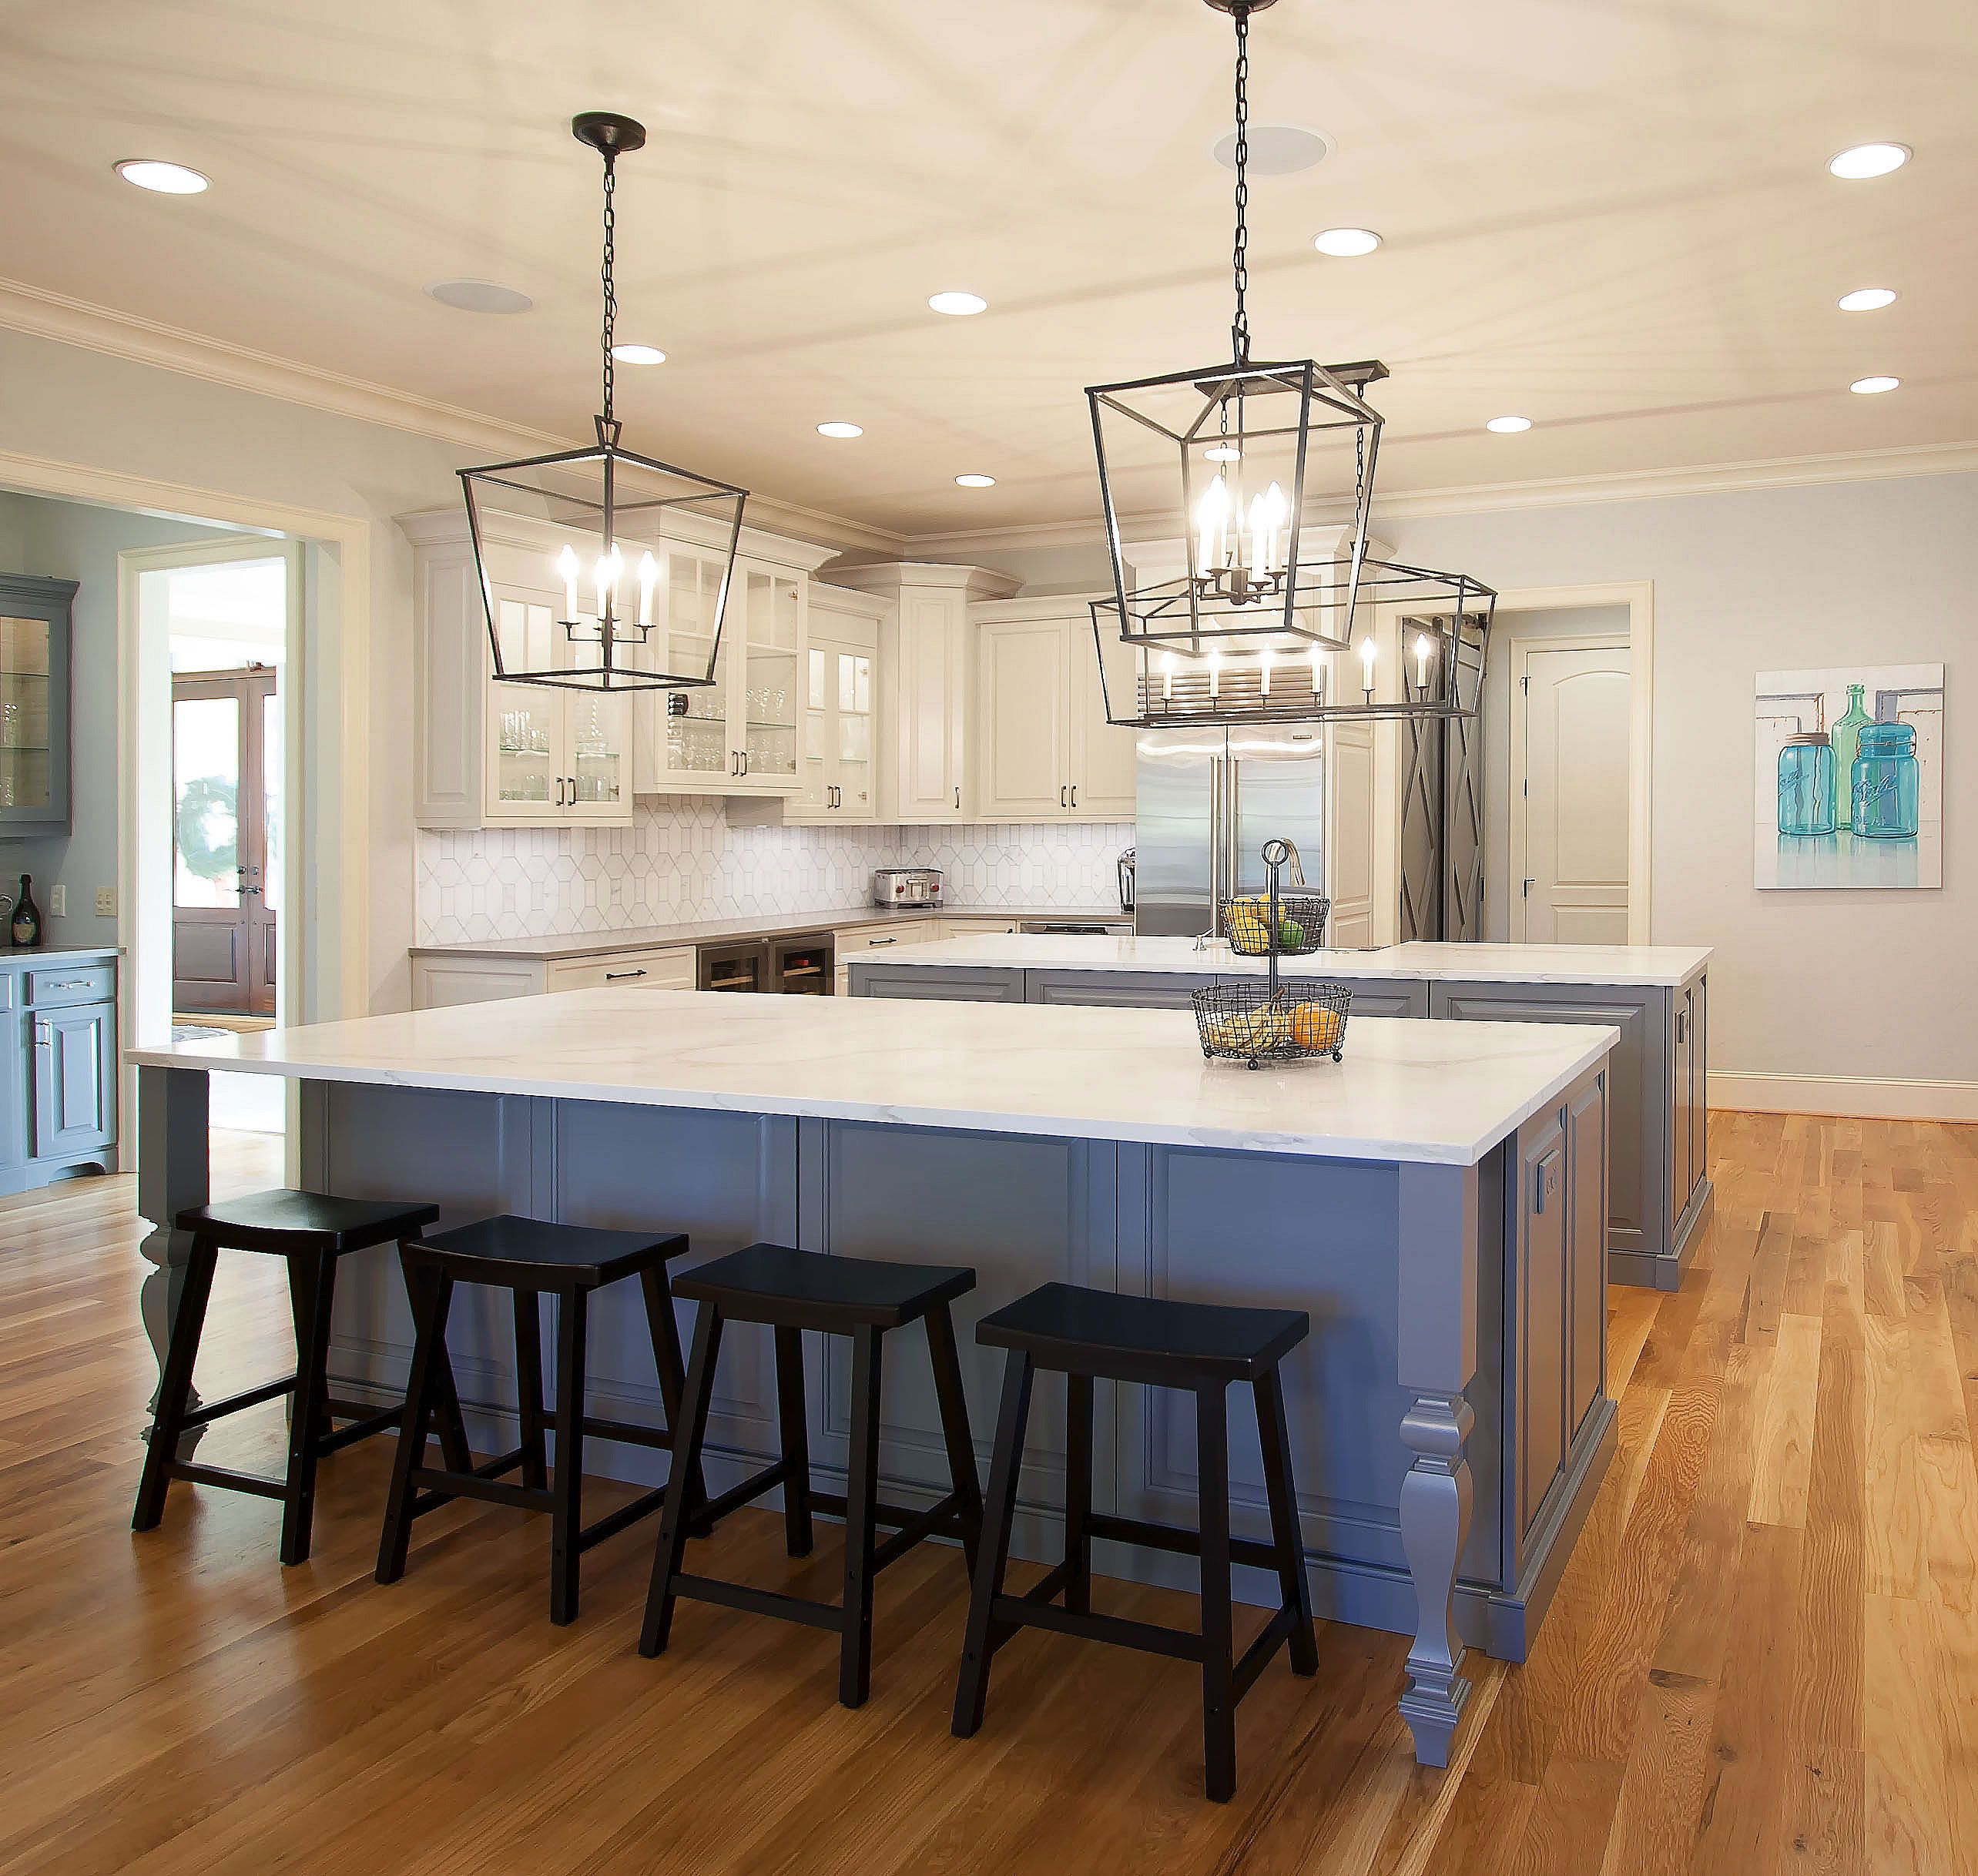 Best Kitchen Layout For Entertaining: A Very Large Kitchen With Two Islands For Plenty Of Work